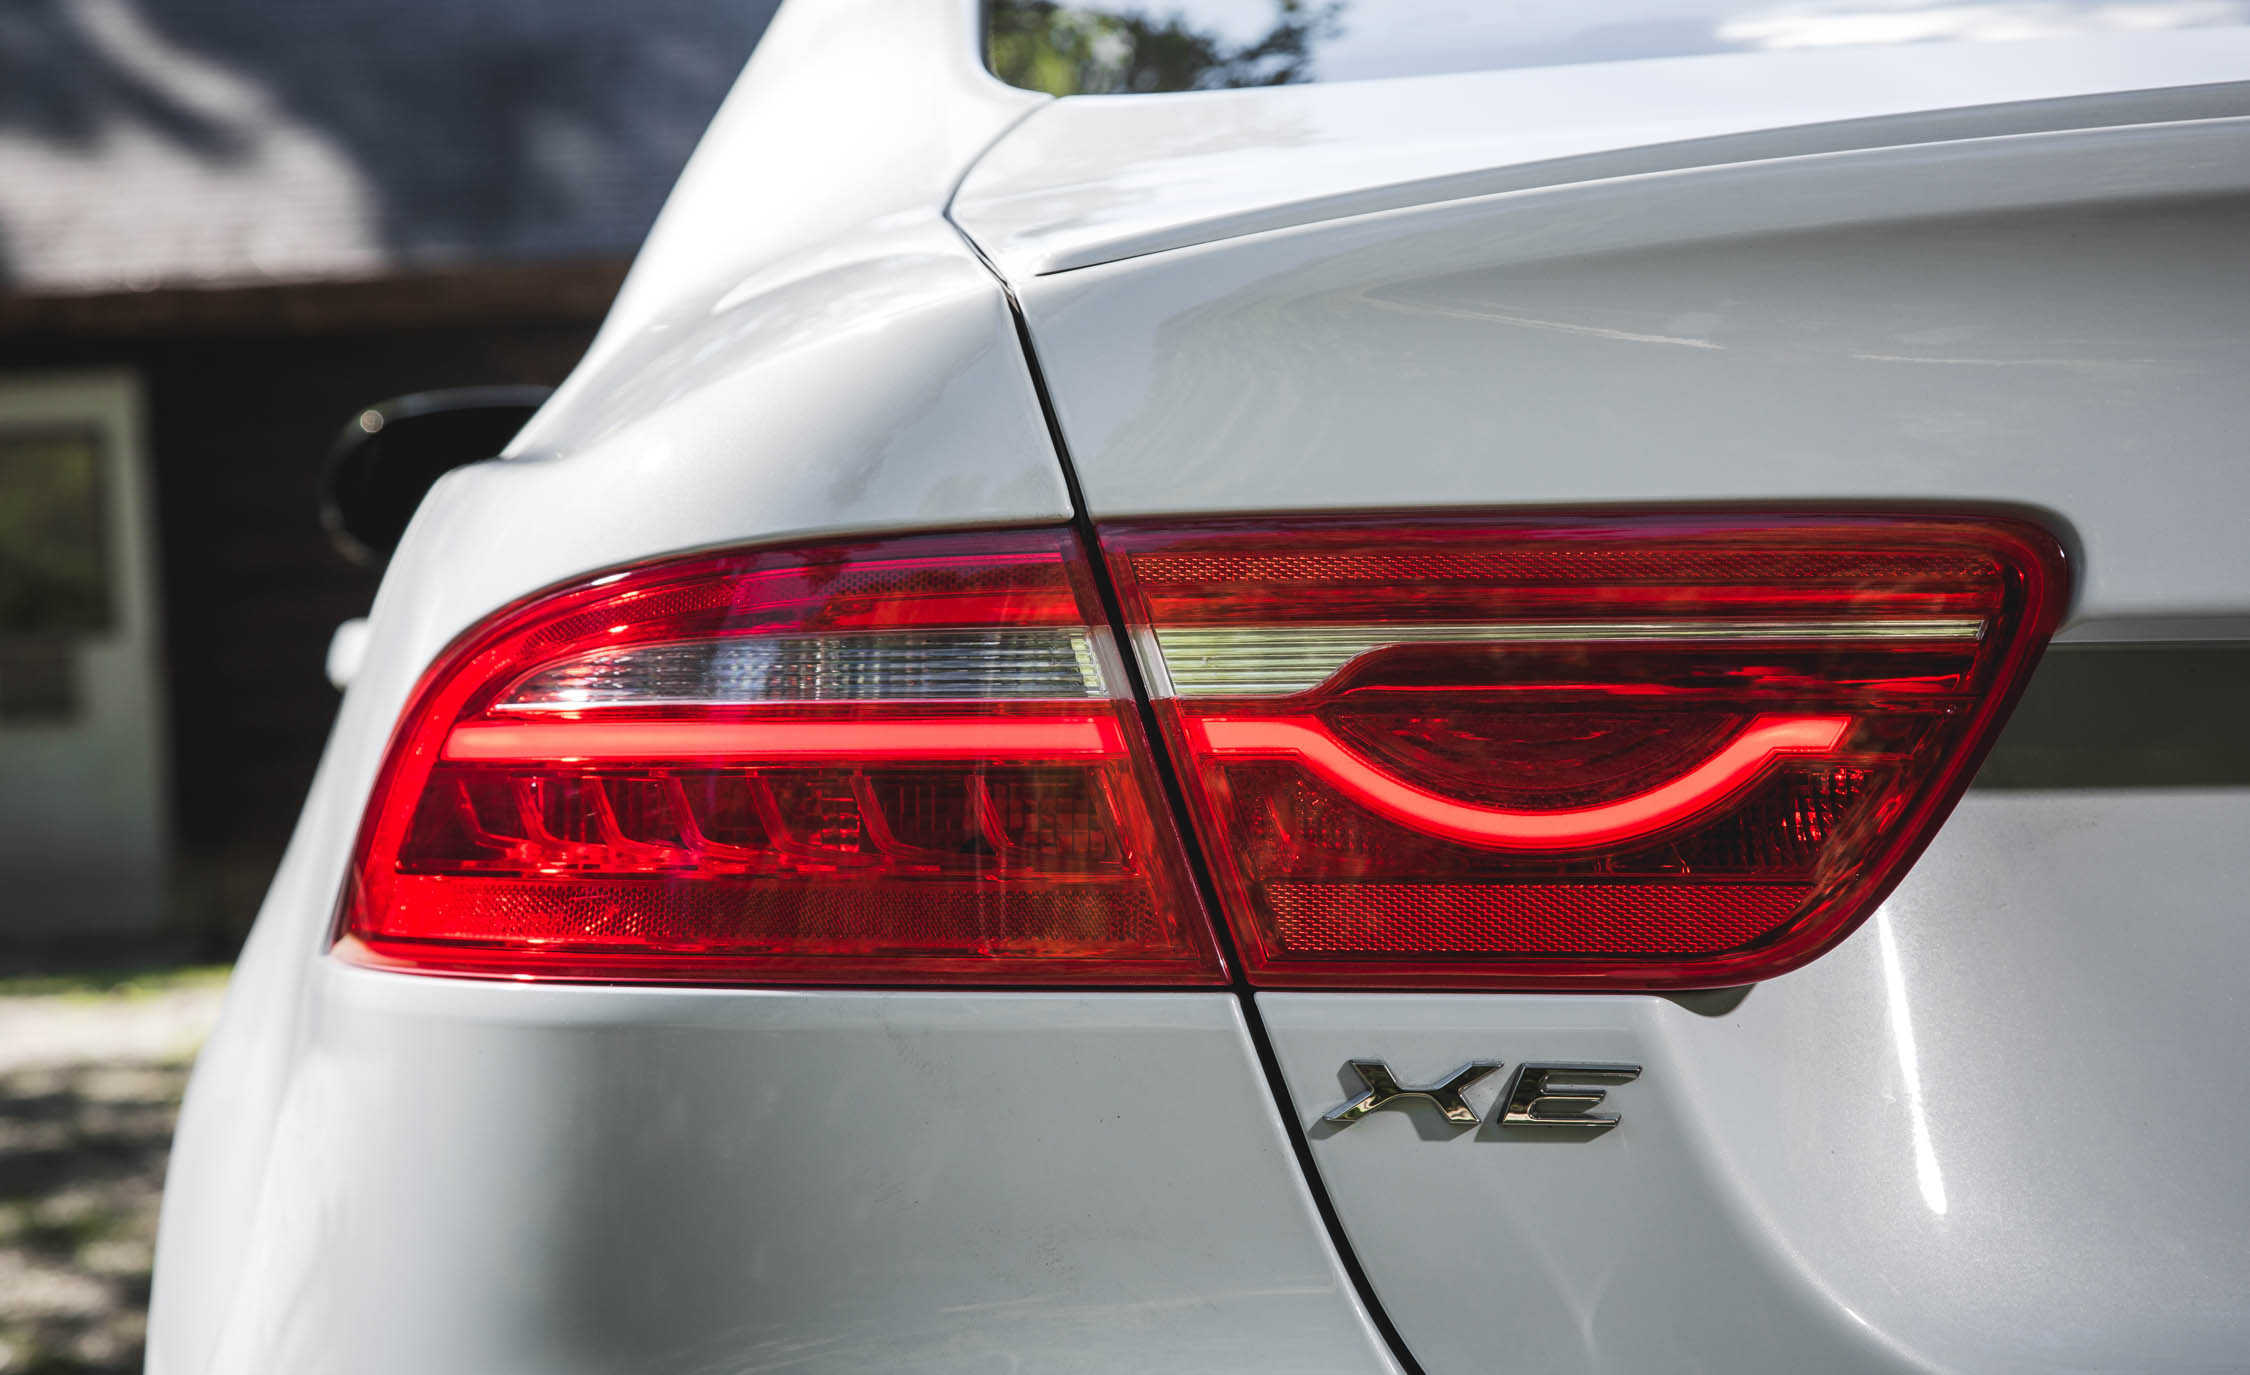 2017 Jaguar Xe White Exterior View Taillight Left Side (Photo 30 of 32)